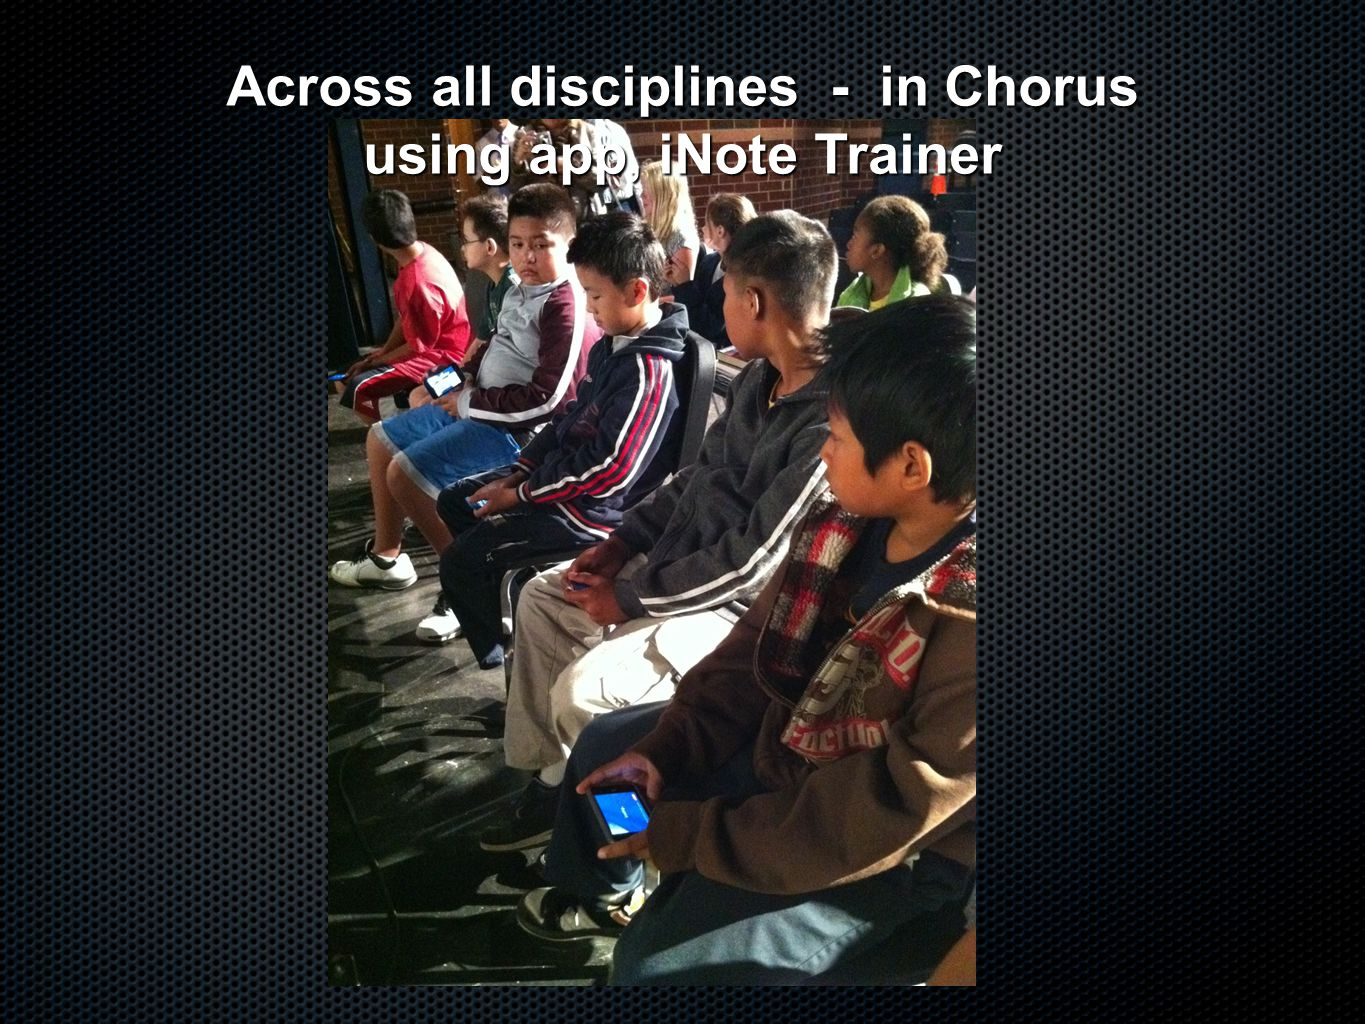 Across all disciplines - in Chorus using app, iNote Trainer